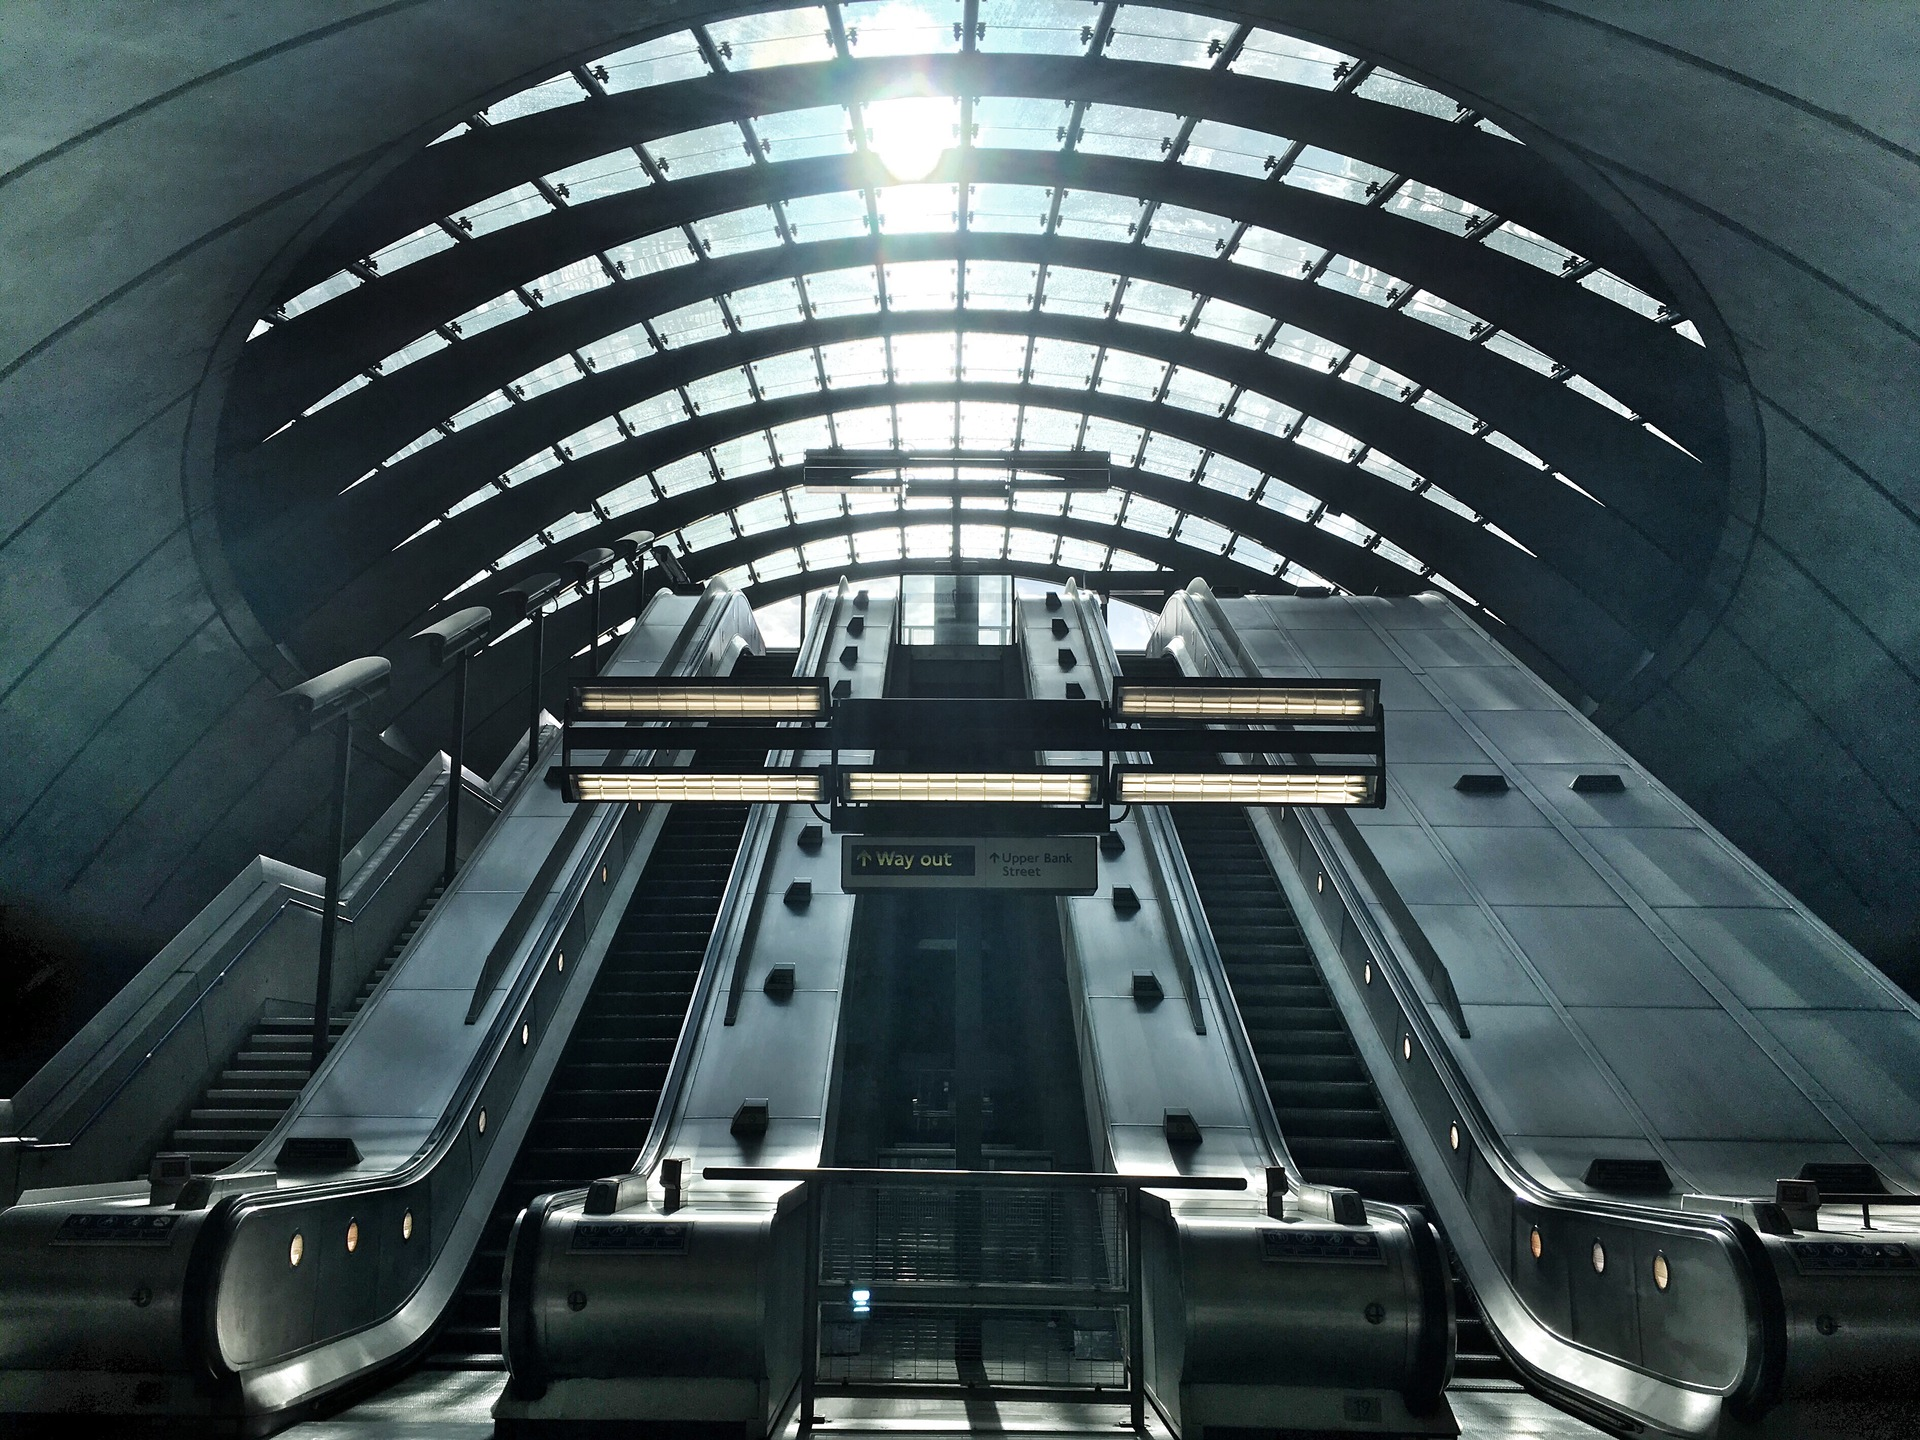 Canary Wharf tube station in London